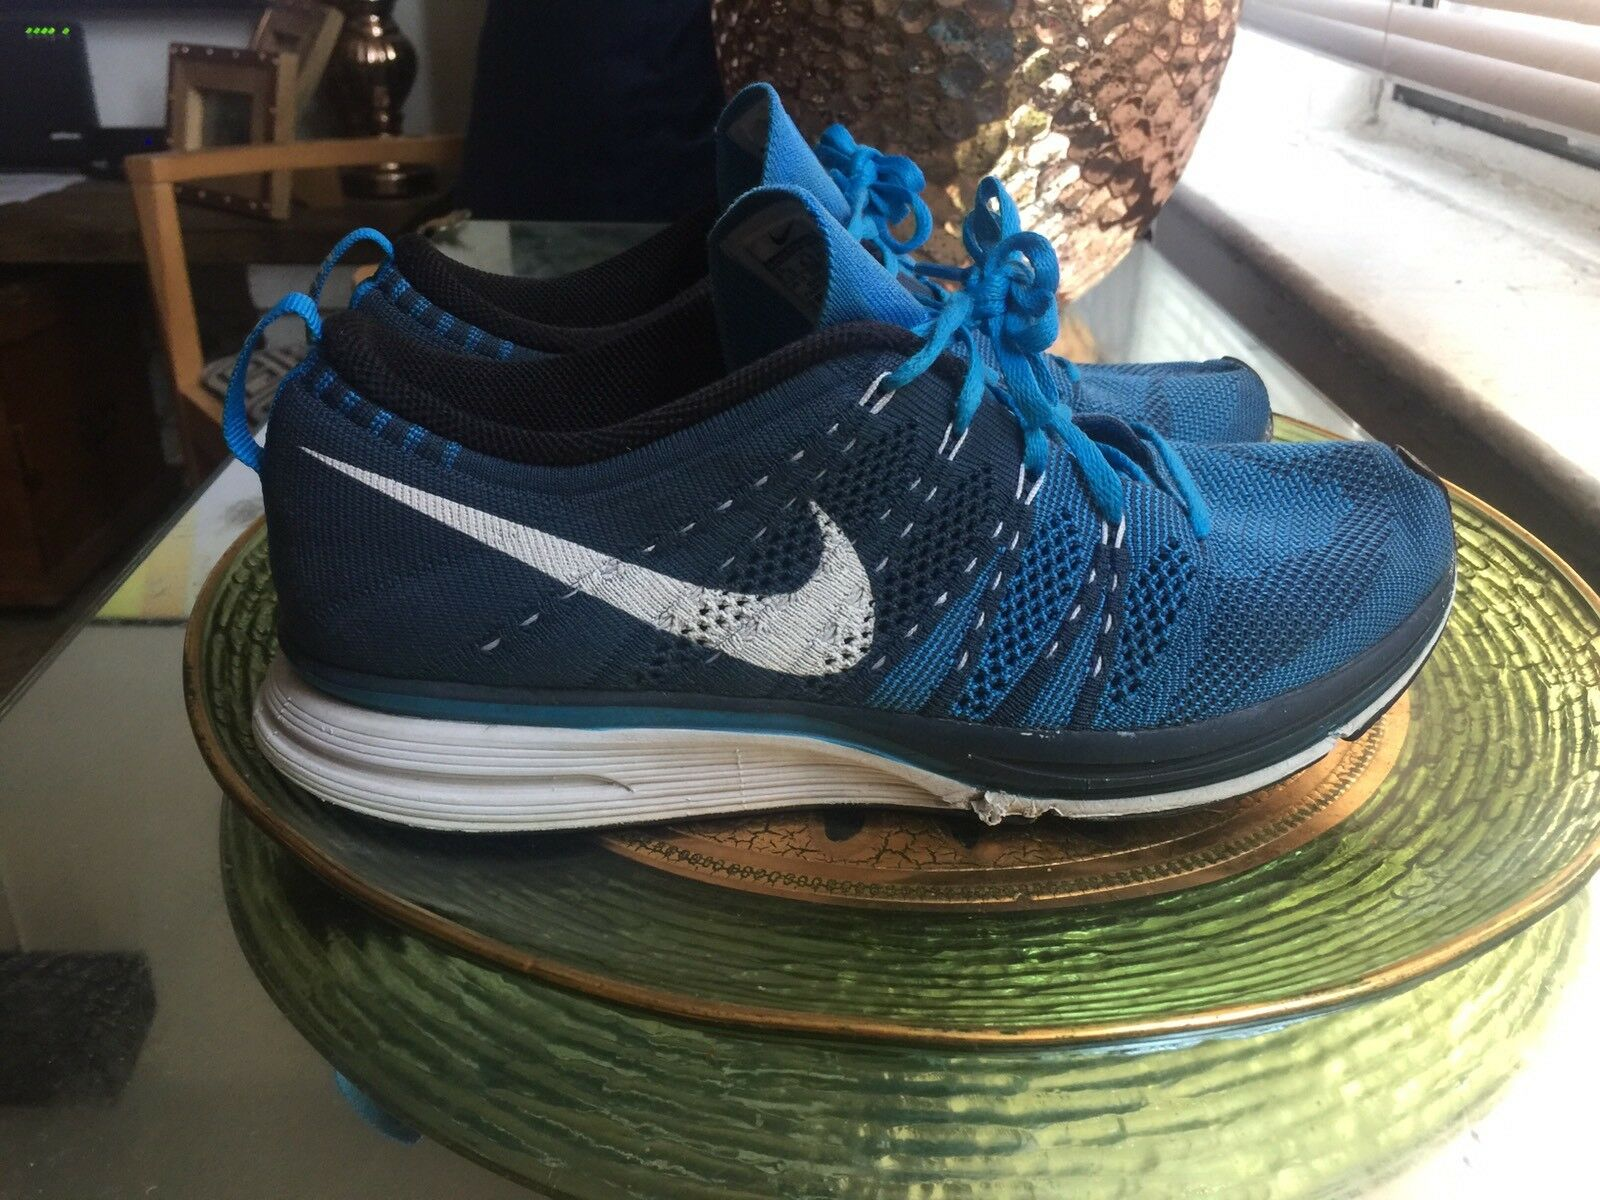 Nike Flyknit Trainer 2018 squadron blue white 532984 414 racer size 7.5 The latest discount shoes for men and women